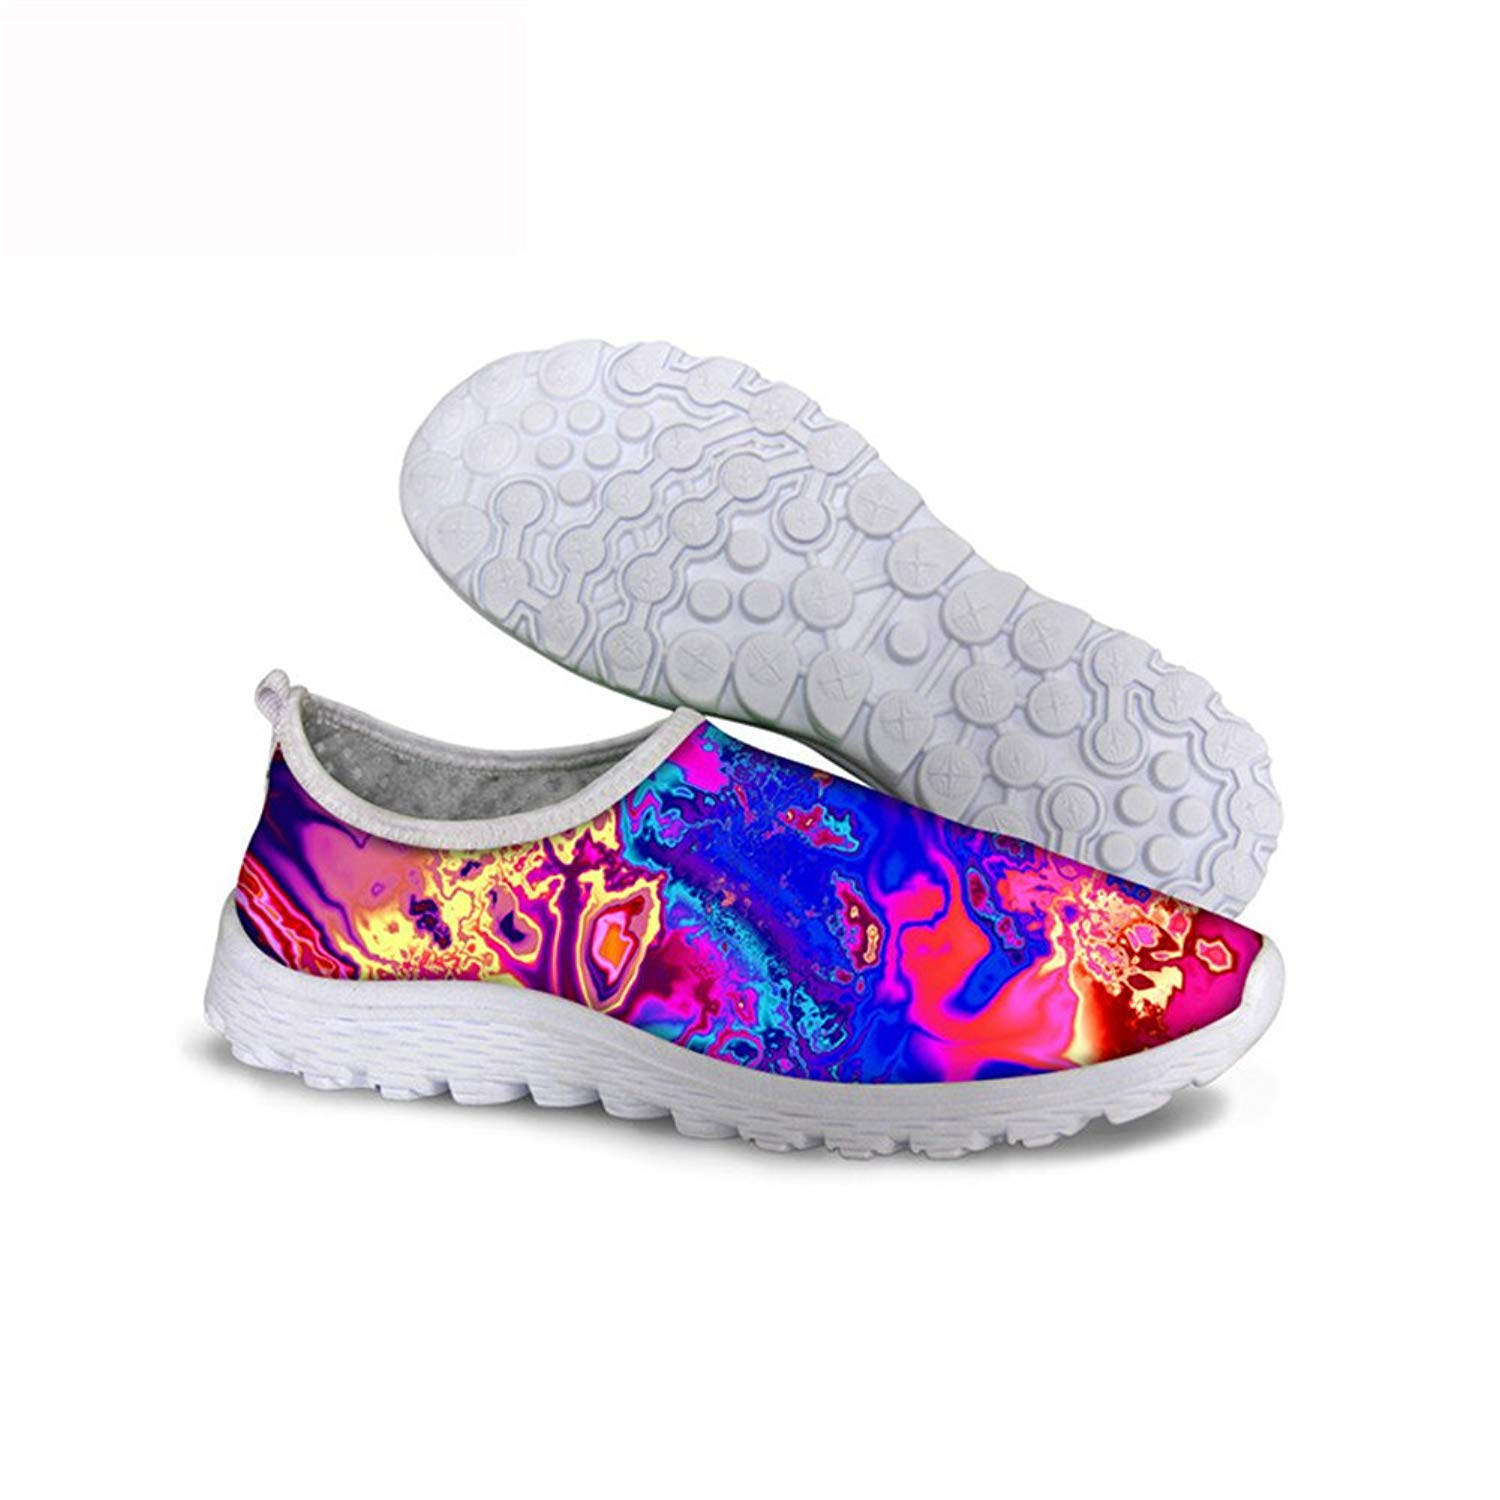 FancyPrint Fashion Print Slip-on Lightweight Walking Shoes Mens Knit Breathable Sneakers